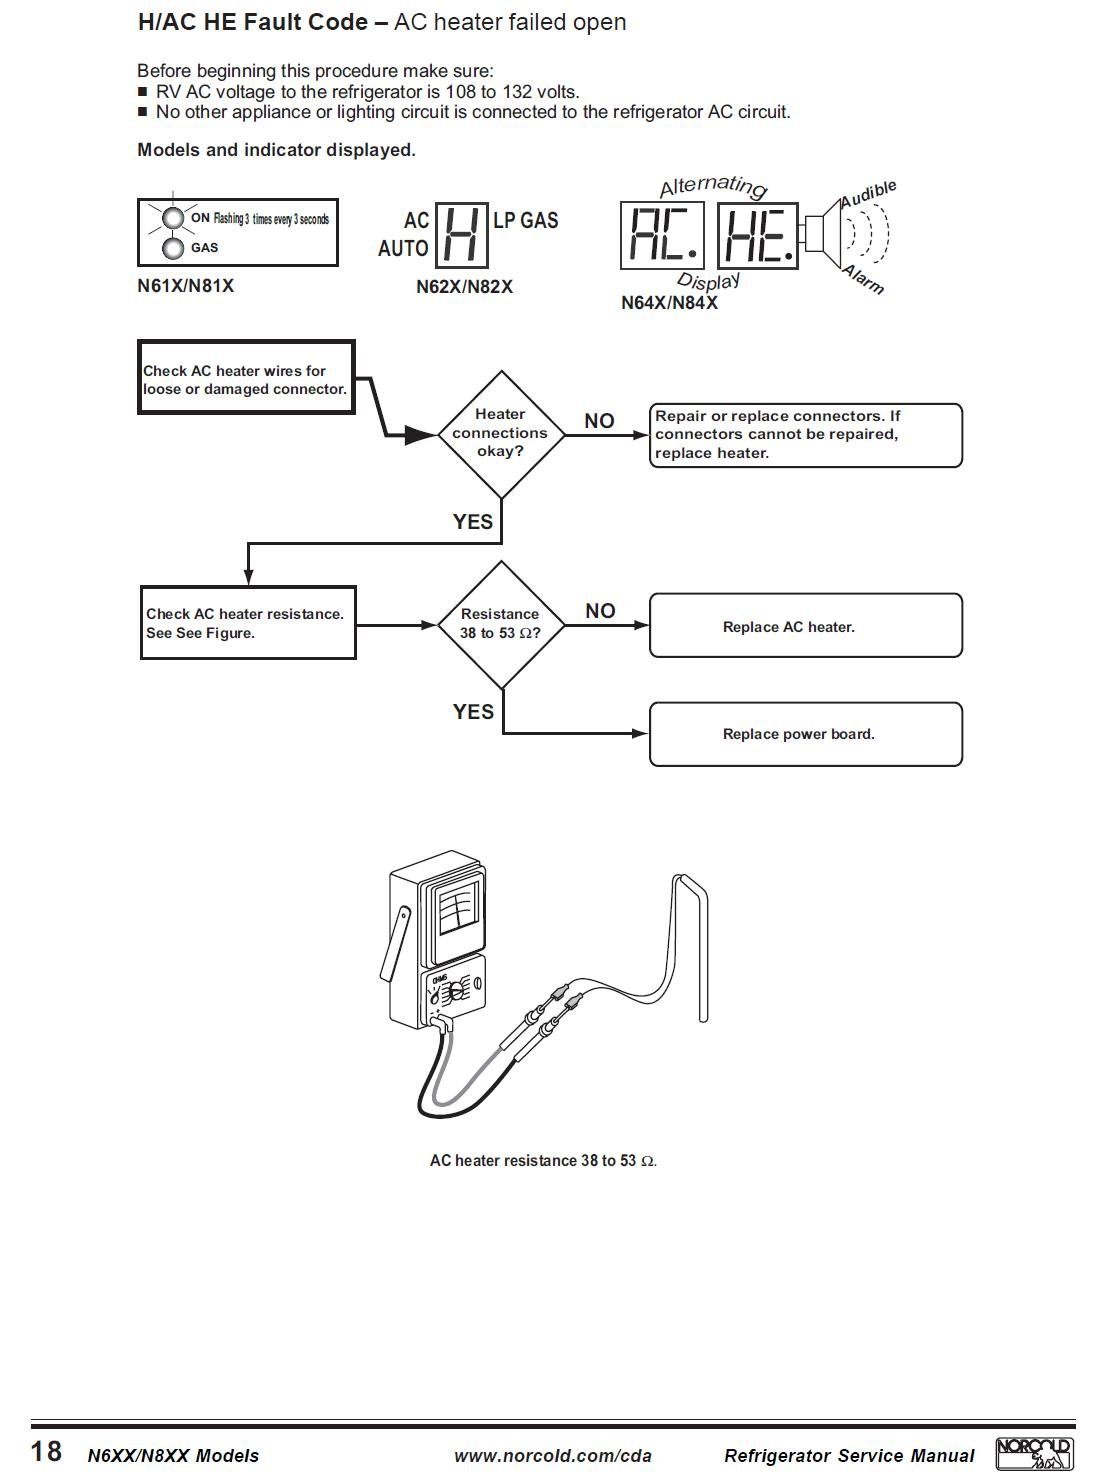 Norcold Fridge Flashing H Code What Do I Need To Replace Refrigerator Wiring Schematic Graphic